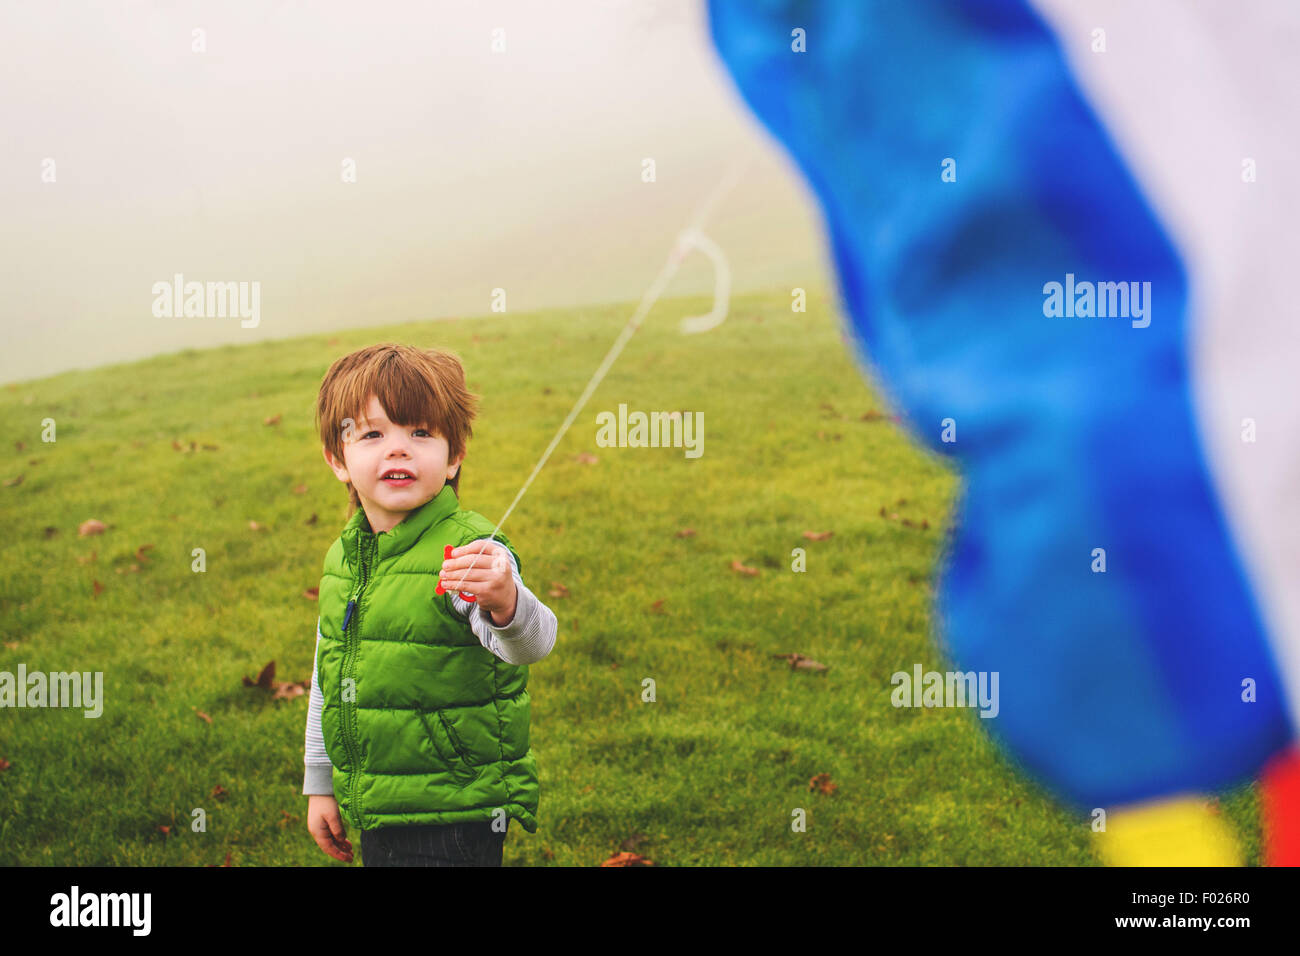 Boy holding a kite in the fog - Stock Image